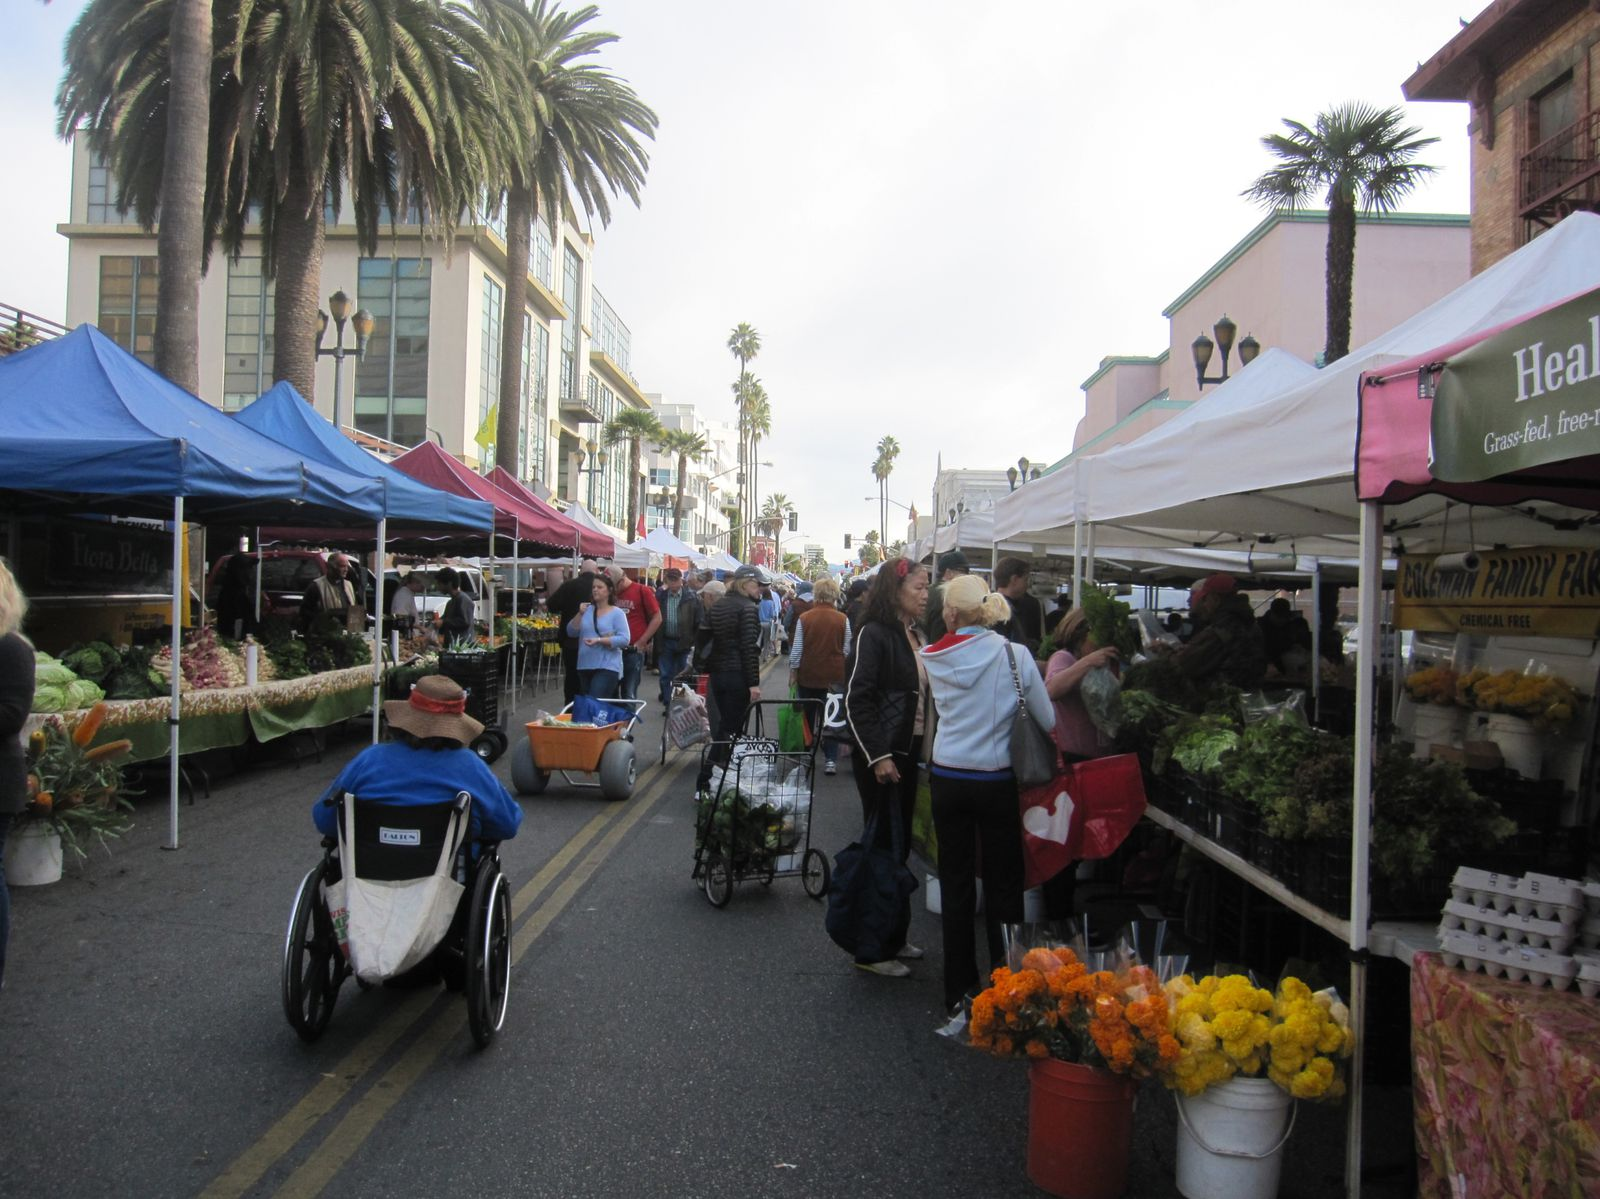 Los Angeles: Market time